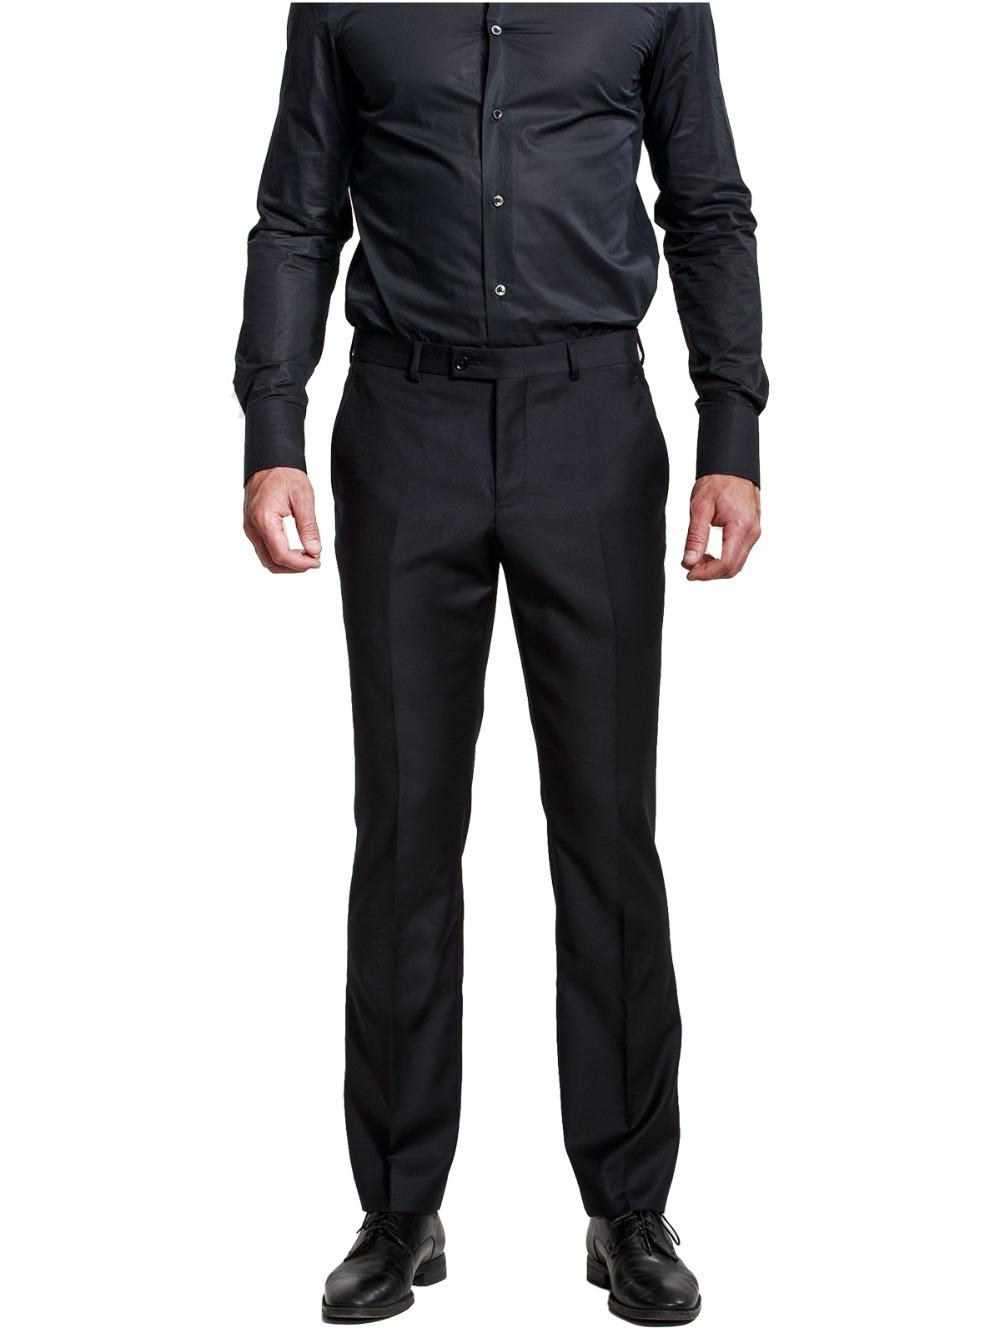 ceda2db4c788 Men's Black Suit Separate Pants Flat-Front Straight Slim-fit Pants With  Fashion Style For Business Male Leisure Suit